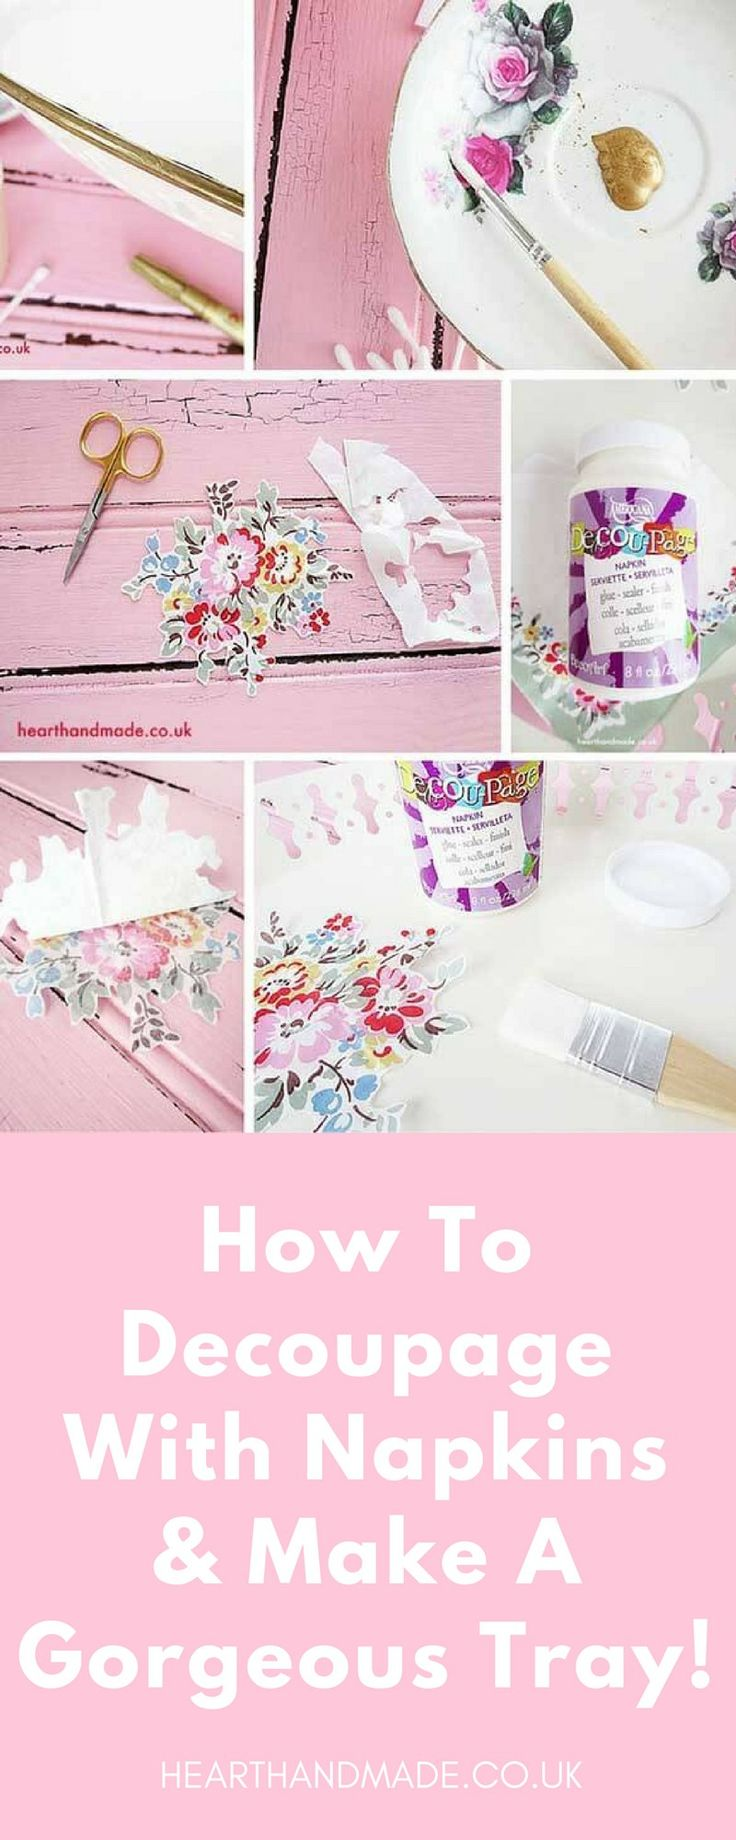 are you excited to learn how to decoupage with napkins? This tutorial teaches you the techniques to get a smooth finish so you can decoupage napkins onto almost any surface using the Americana Deco Art DecouPage Glue suitable for use with napkins. It's a super thin decoupage glue so that it doesn't damage the delicate napkins too much.